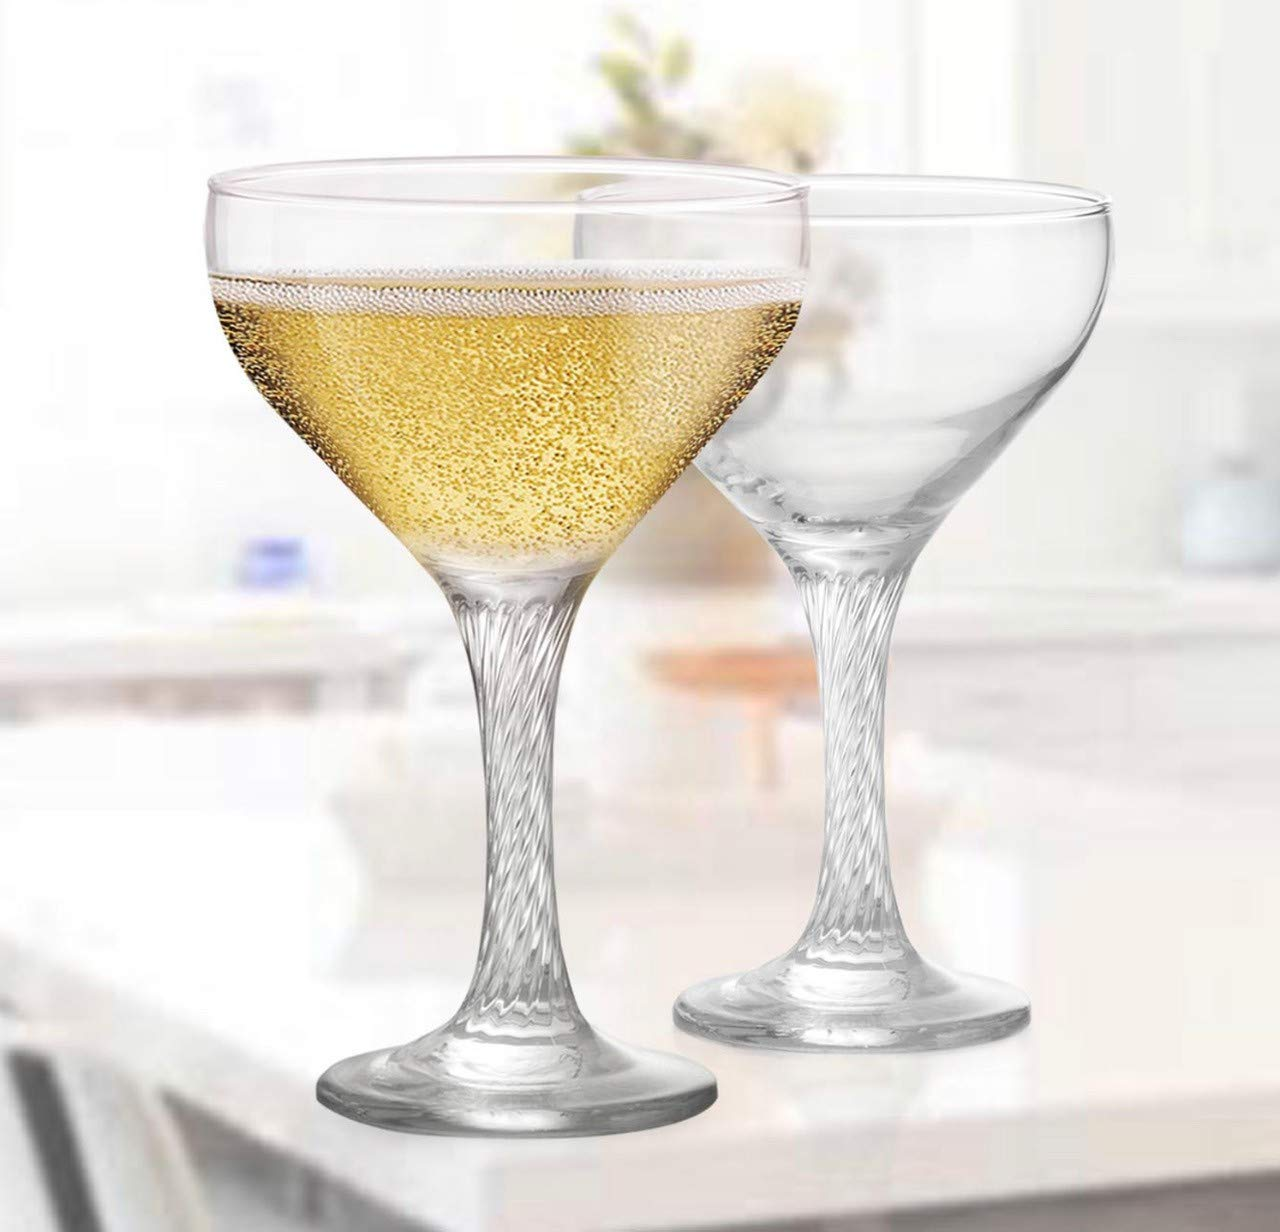 GLASSCO Engraved Martini Coupe Cocktail Glasses - 9.50 Ounce Cups, (Set Of 24)